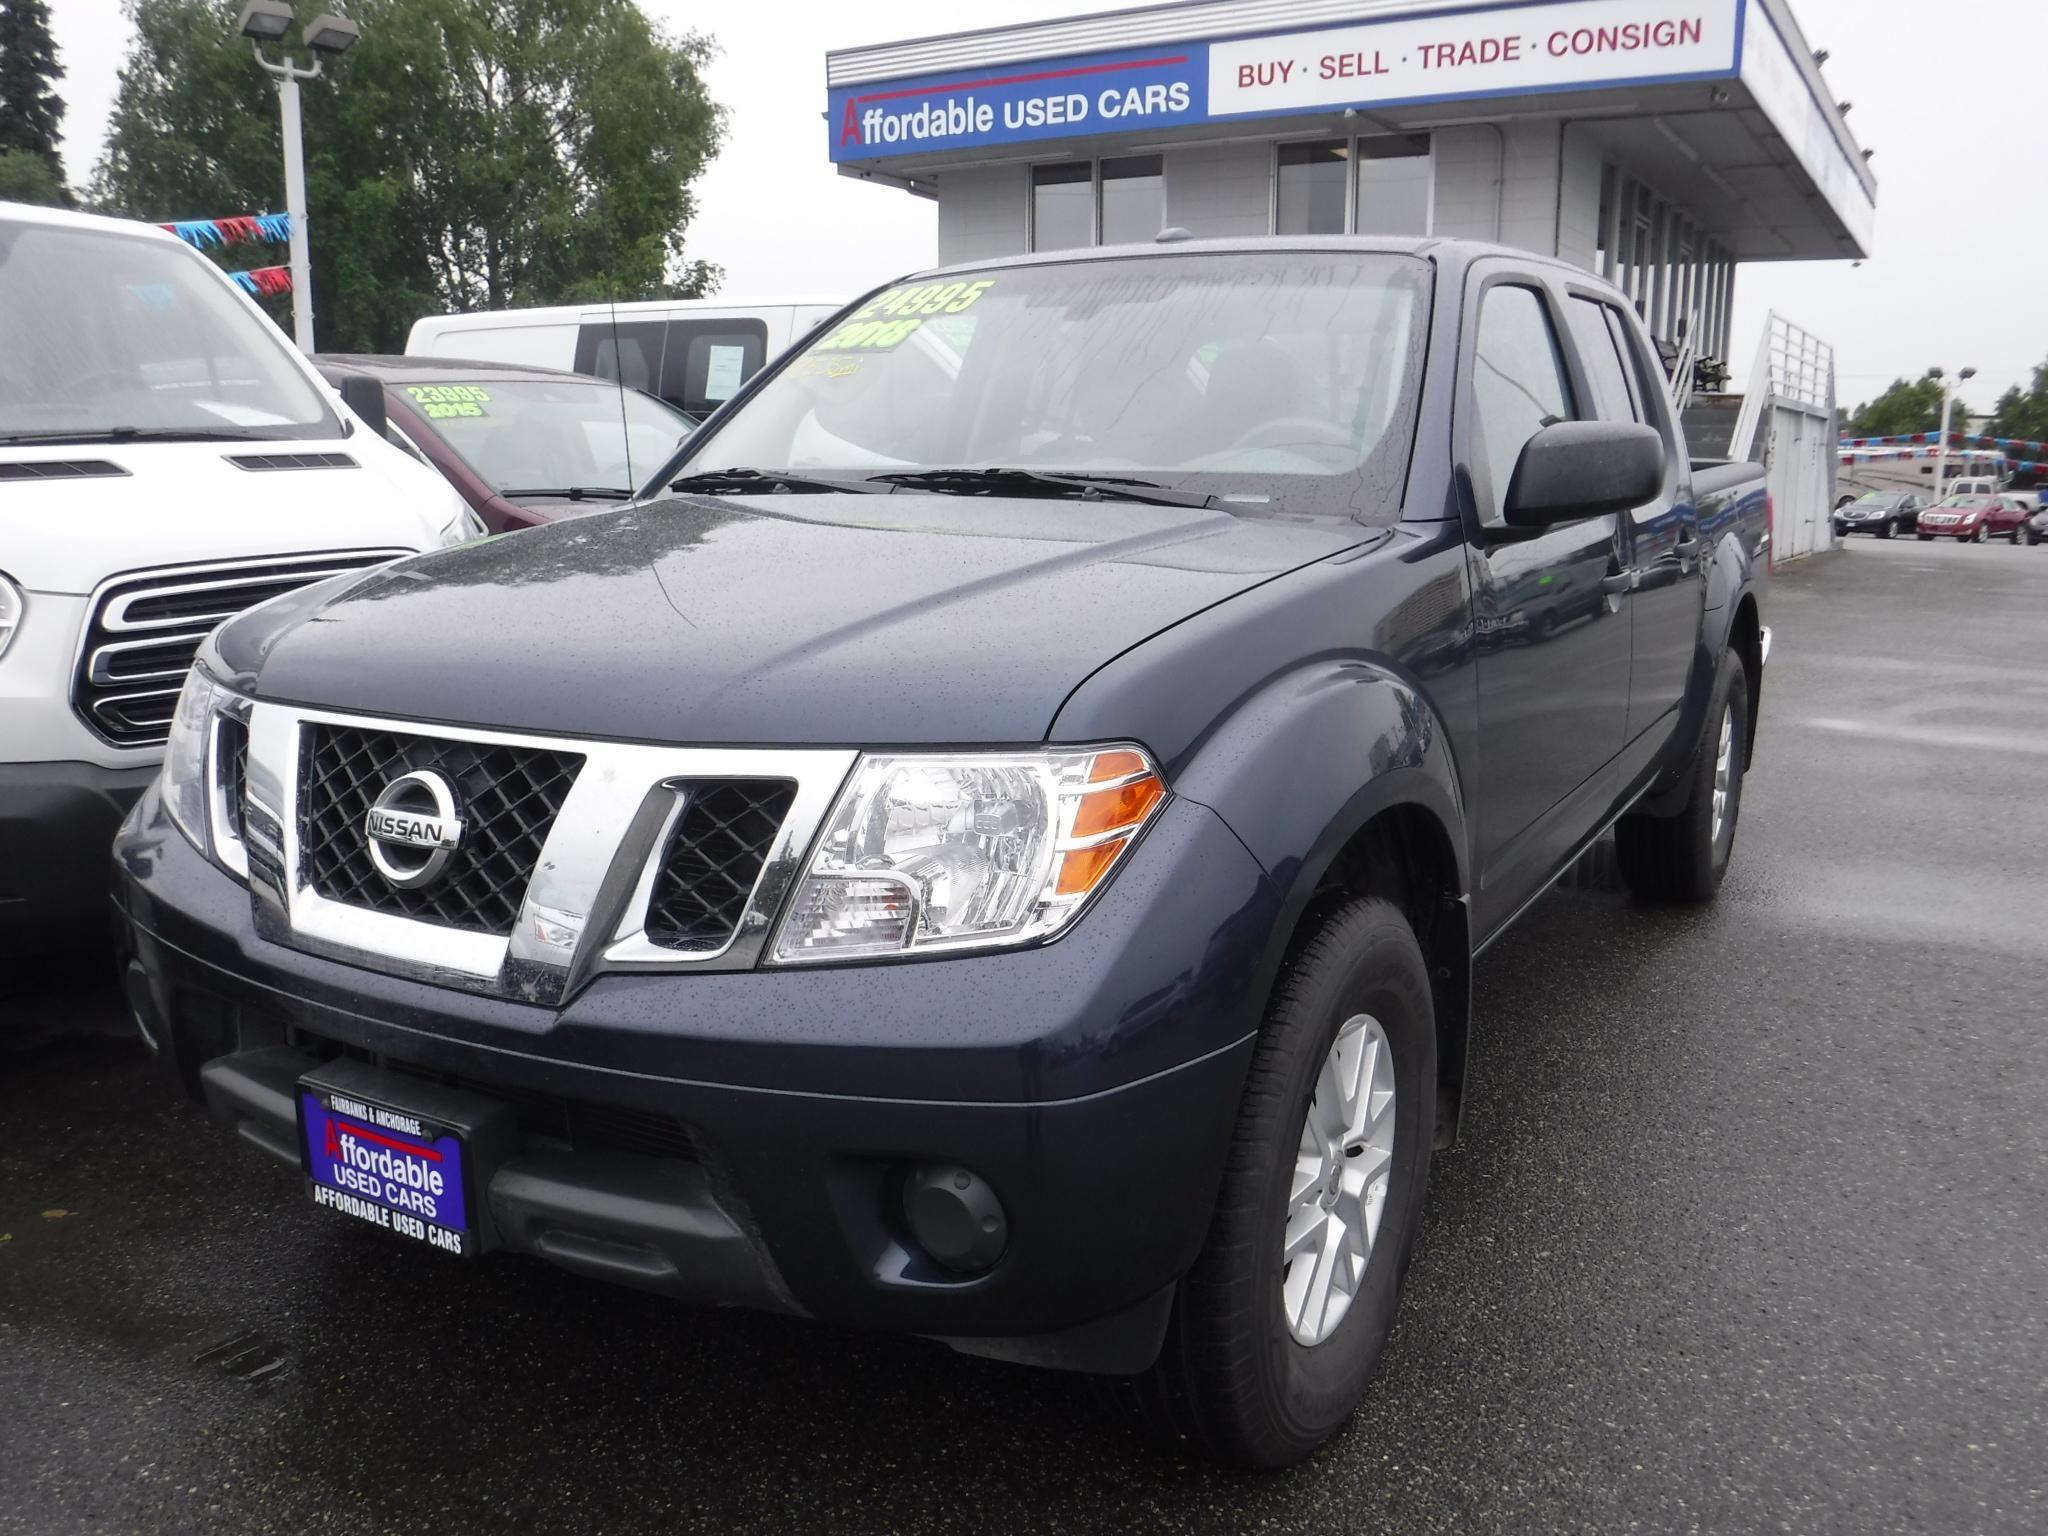 Used Cars Anchorage Awesome Affordable Used Cars Anchorage 929 East 8th Ave Anchorage Ak